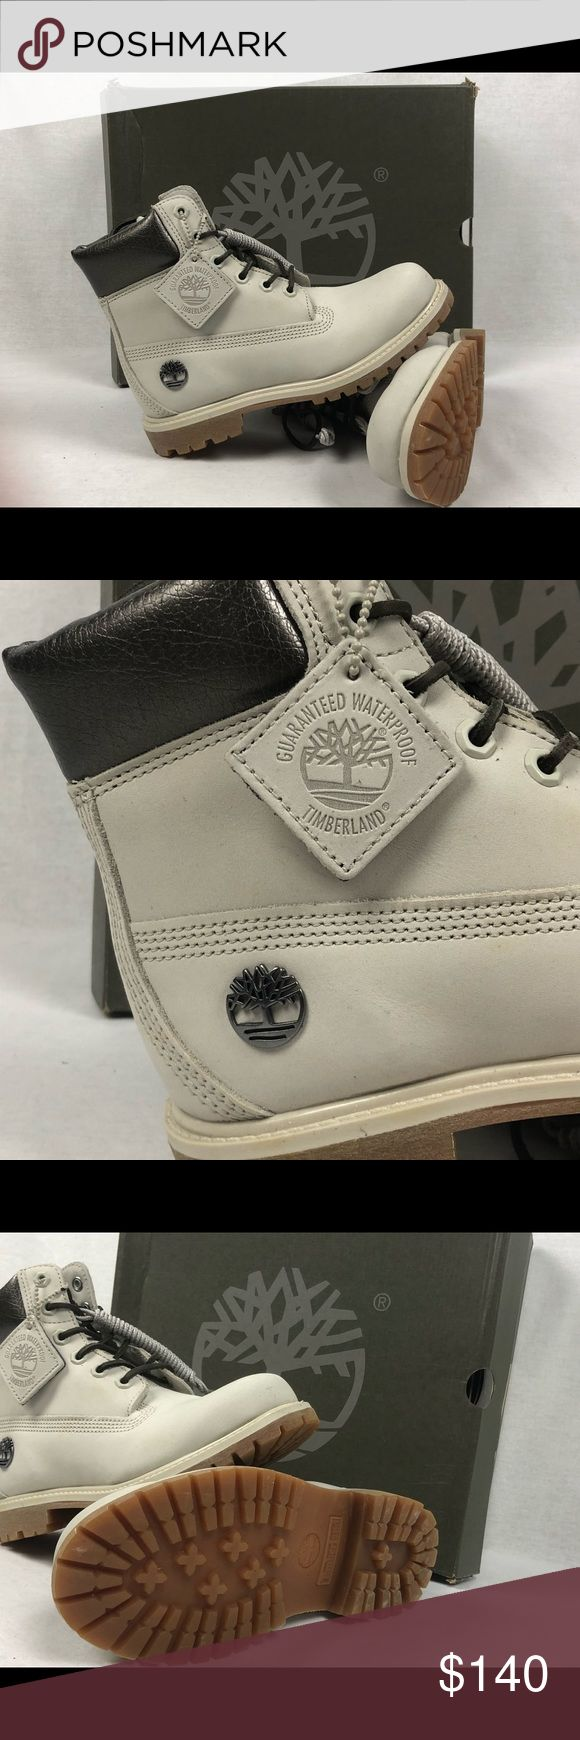 Women's Timberland Waterproof Boots Size 7 NWB Item has never been worn. New with Box! Timberland Shoes Winter & Rain Boots